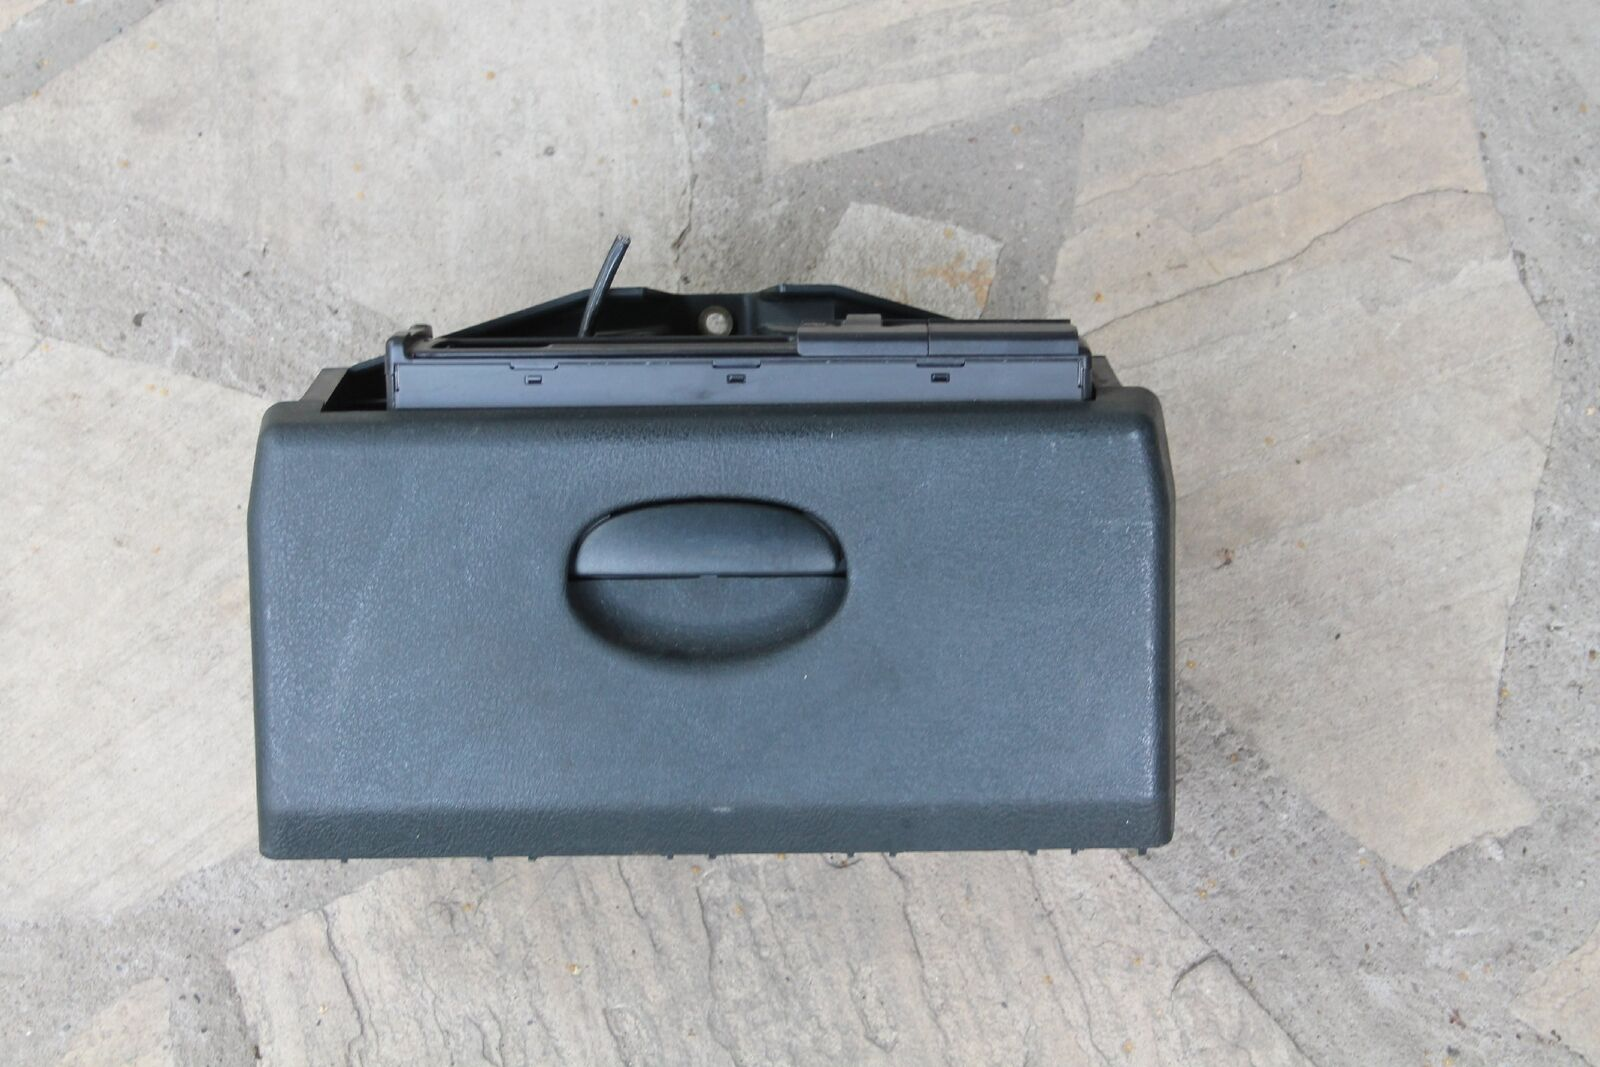 Renault Megane I Bj00 Cd Changer Discchanger In Glove Box 7700423003 Scenic Fuse 1 Of 5only Available